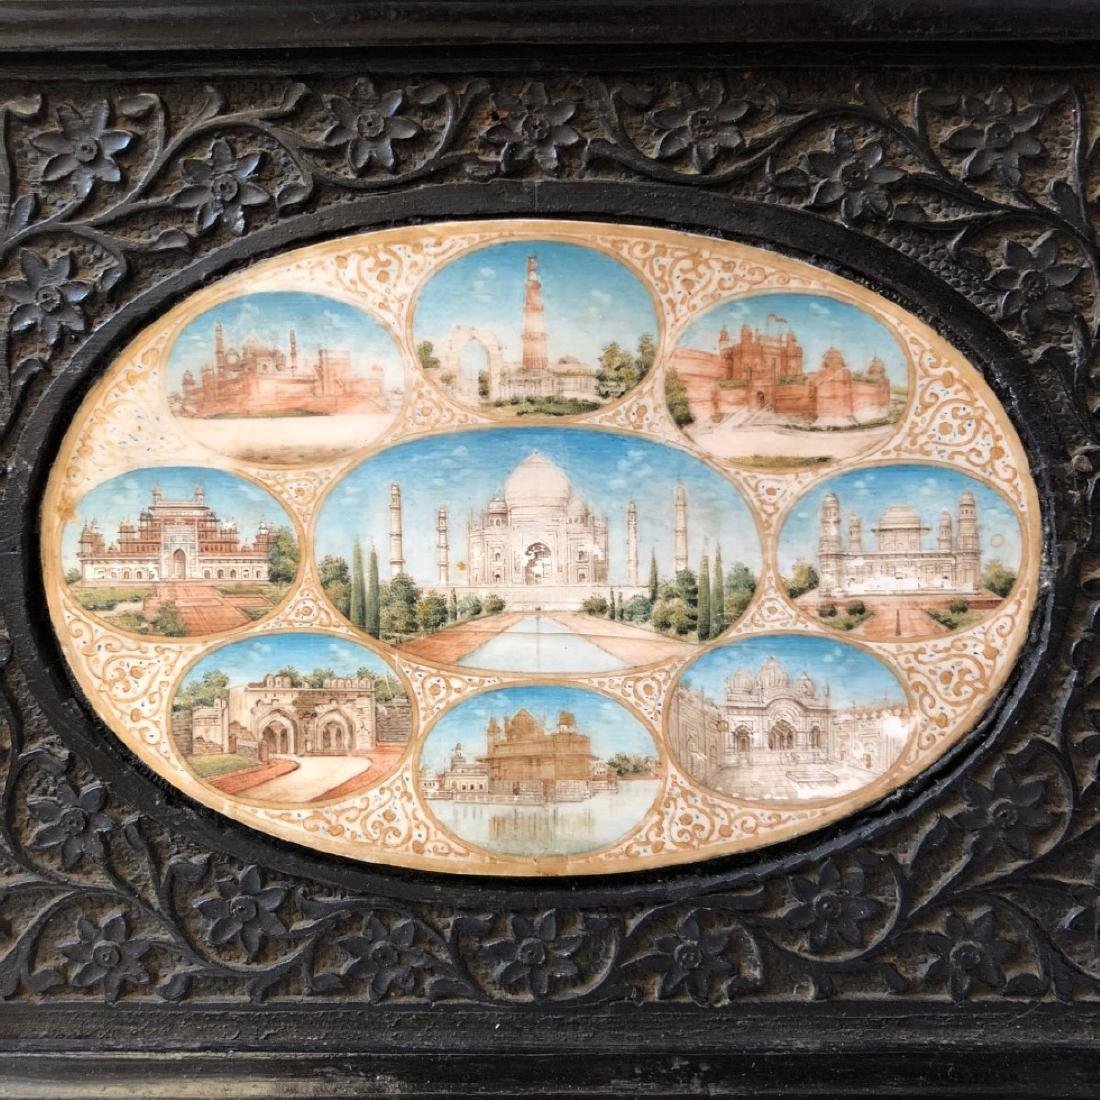 A BEAUTIFUL INDIAN ANTIQUE PAINTING IN FRAME - 3